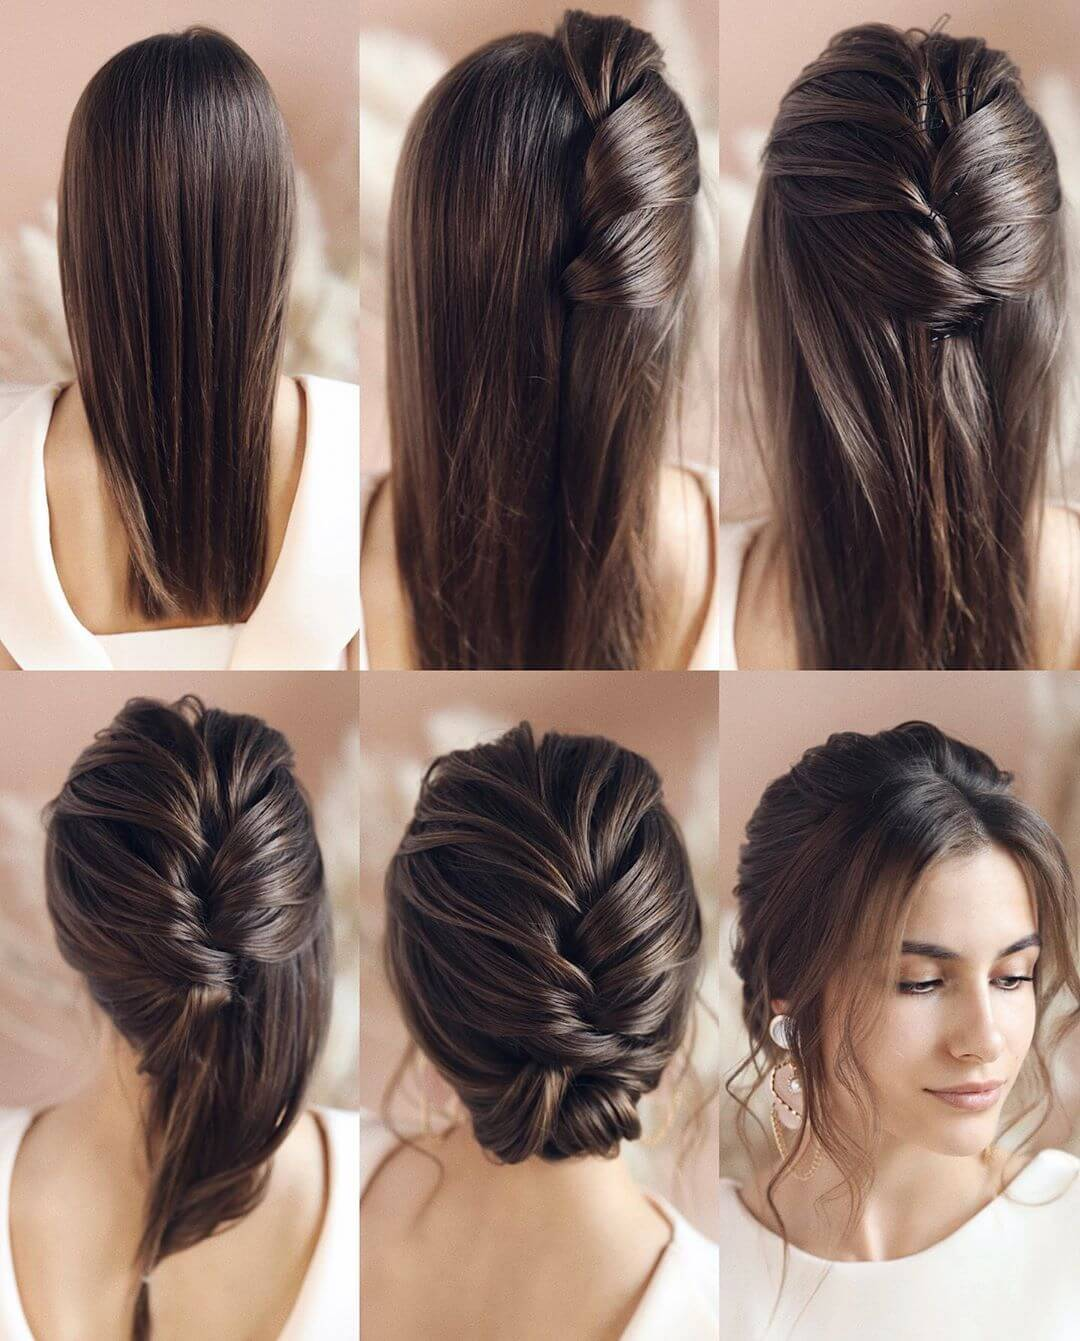 Step by Step Twist down in Hairstyles for Long, Medium, Short Hair